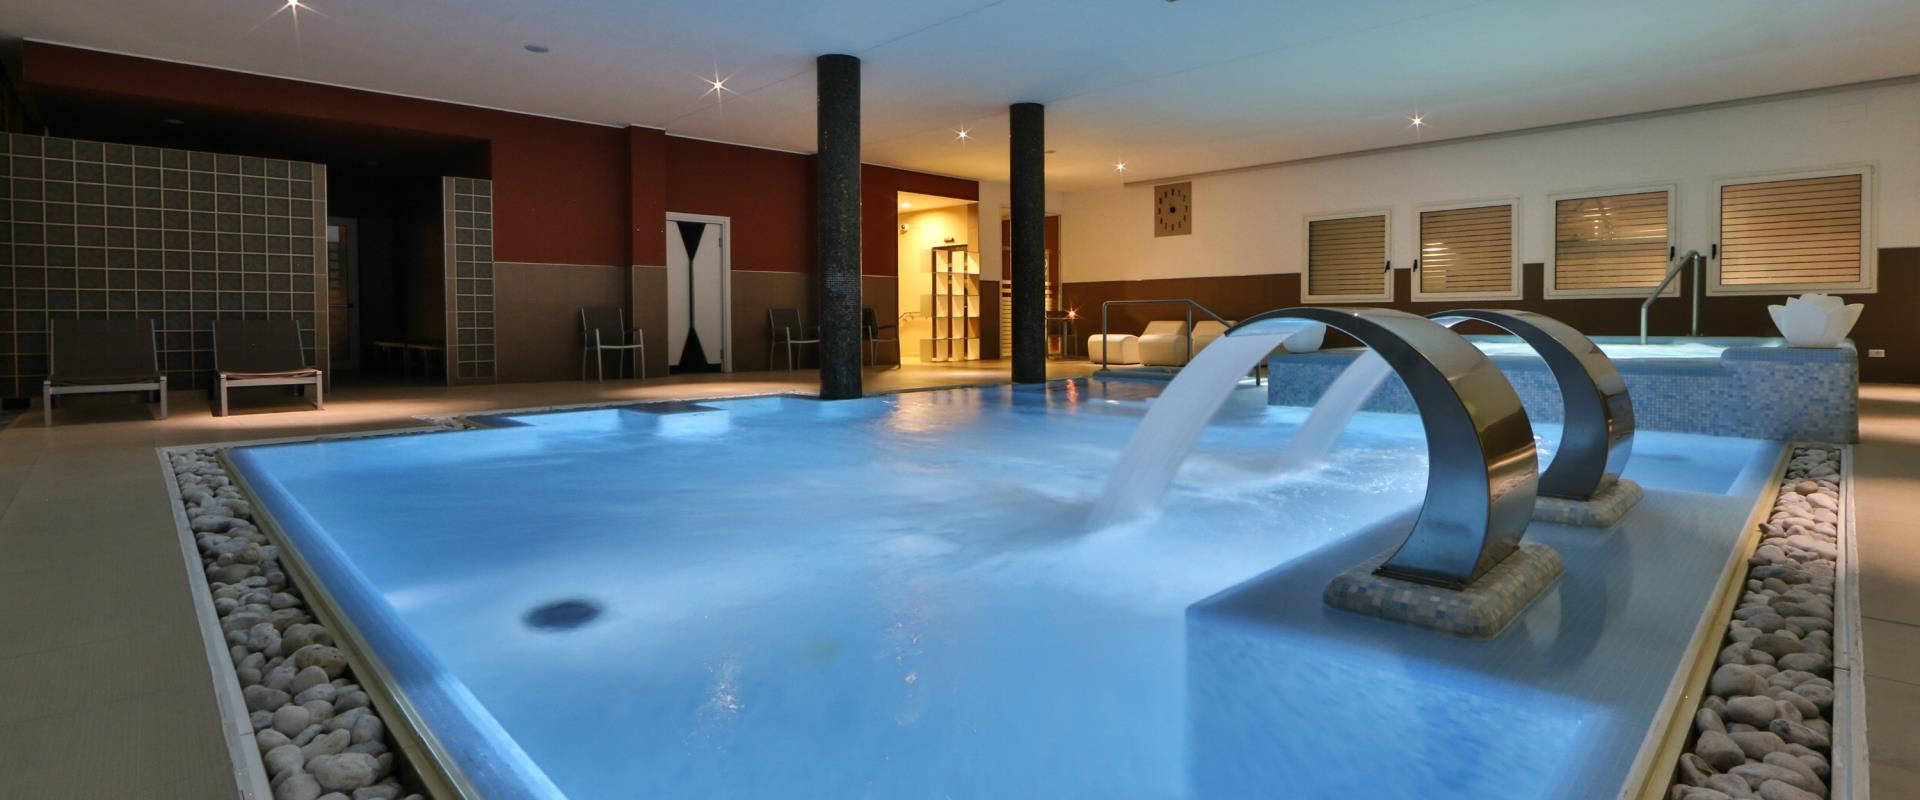 Heated dynamic swimming-pool inside of Best Western Plus HOTEL Galileo Padova